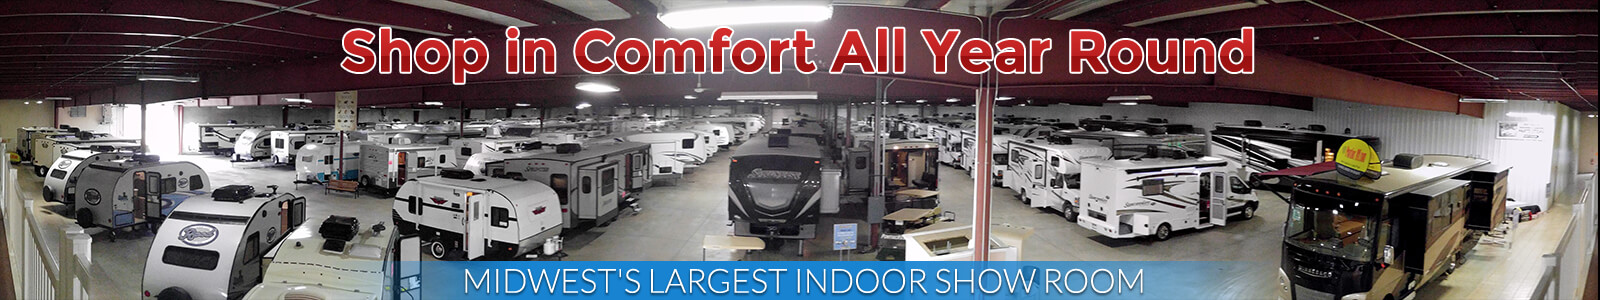 Midwest's Largest Indoor RV Showroom